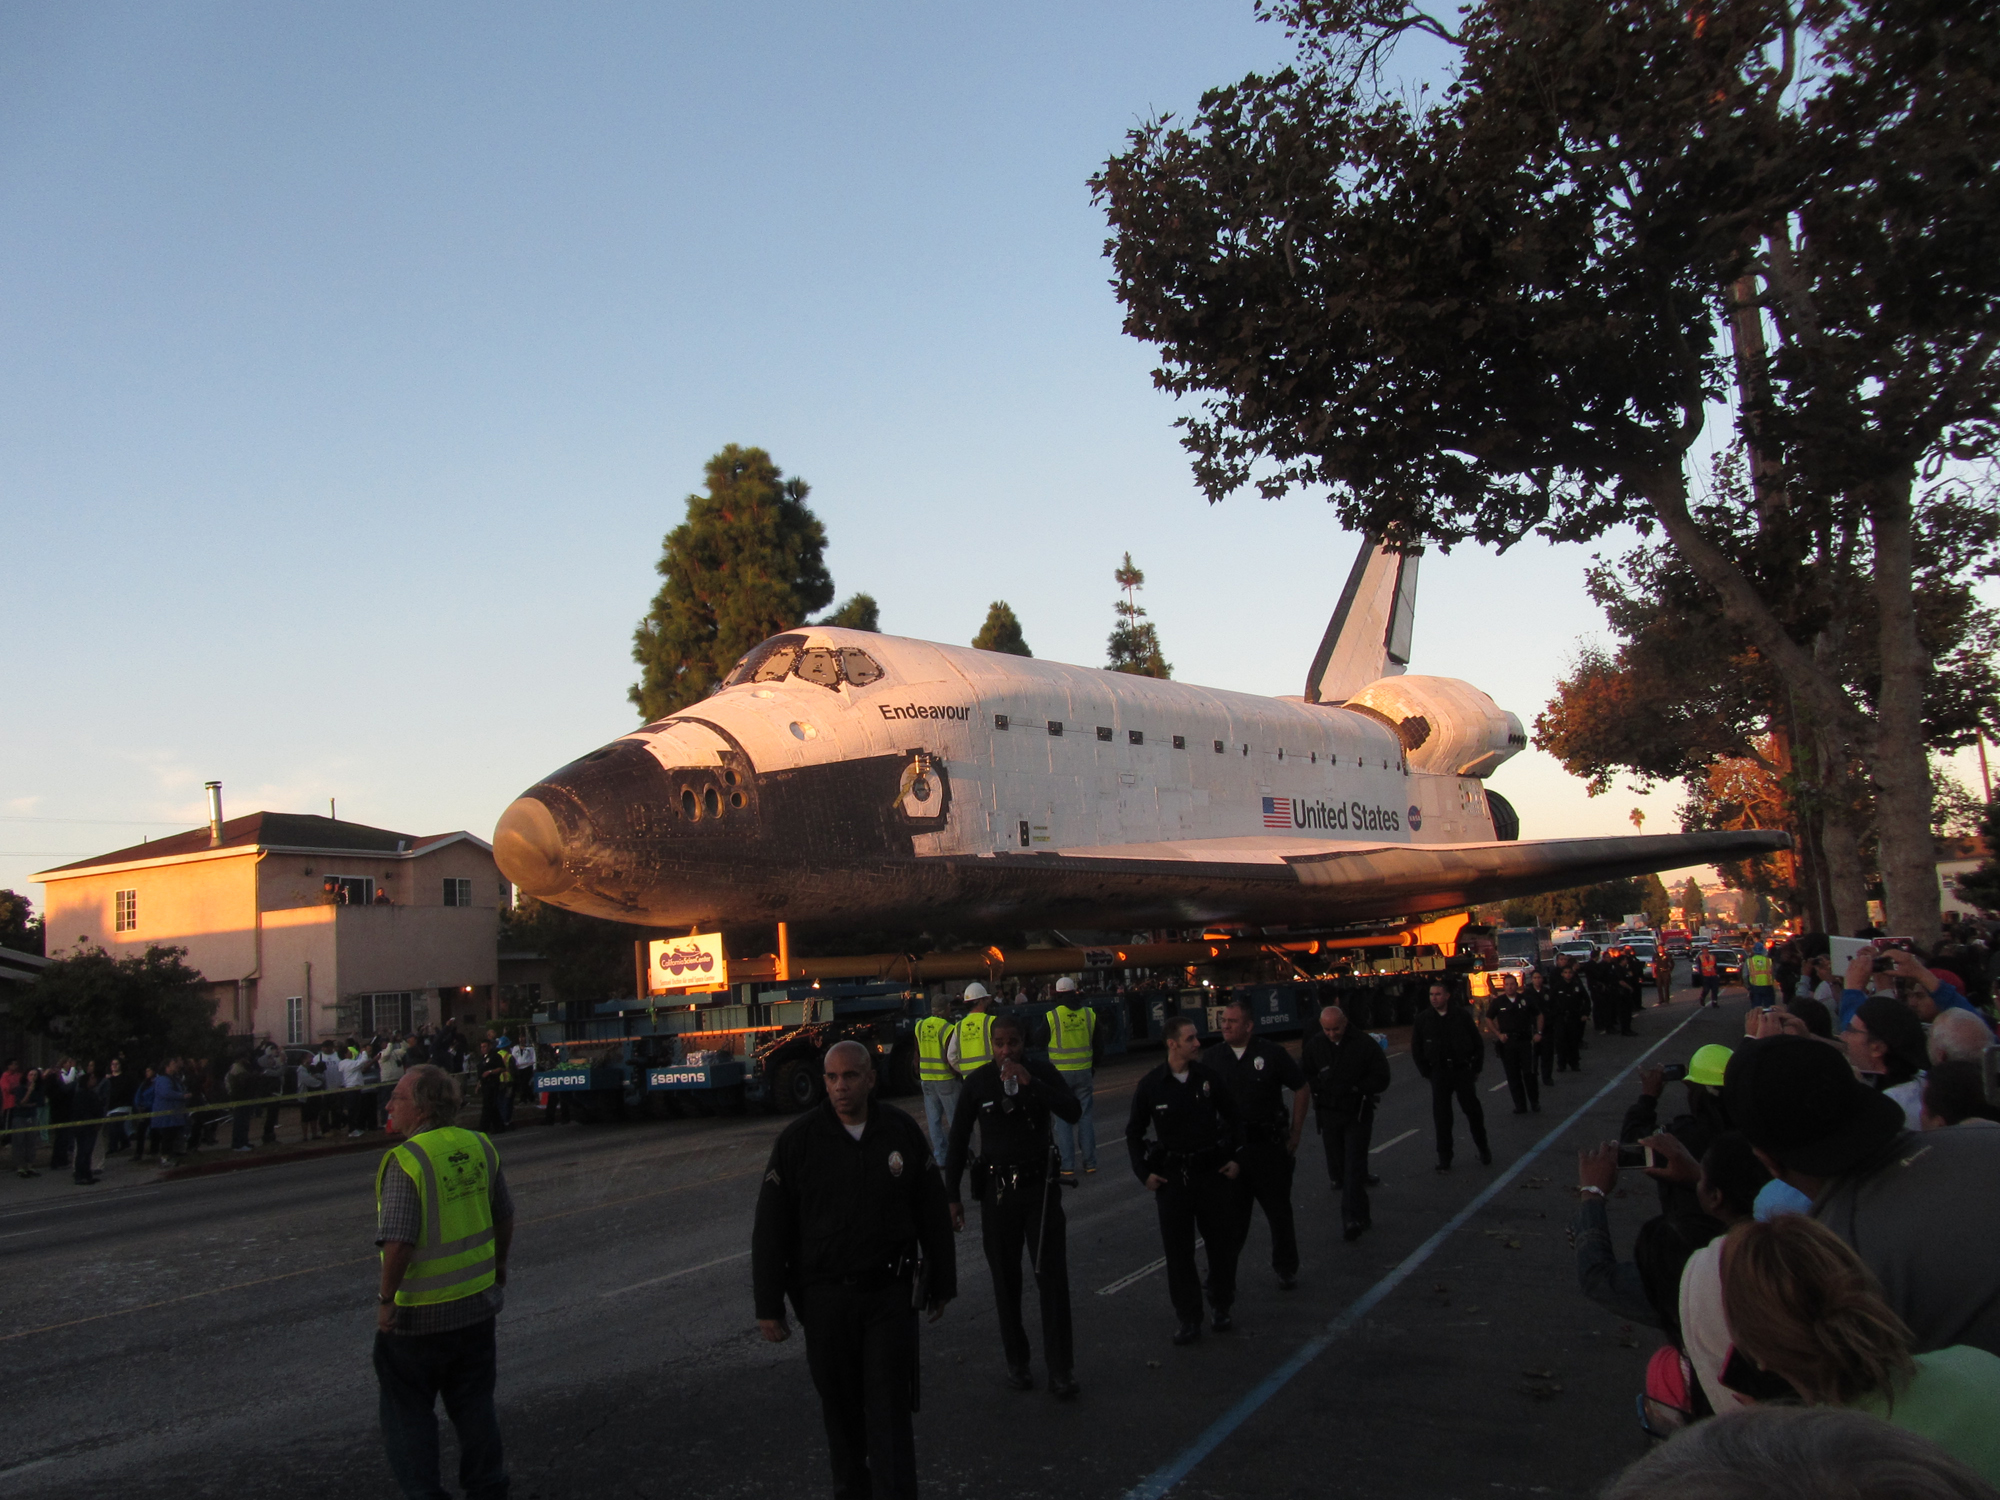 Shuttle Endeavour in the Dawn Light